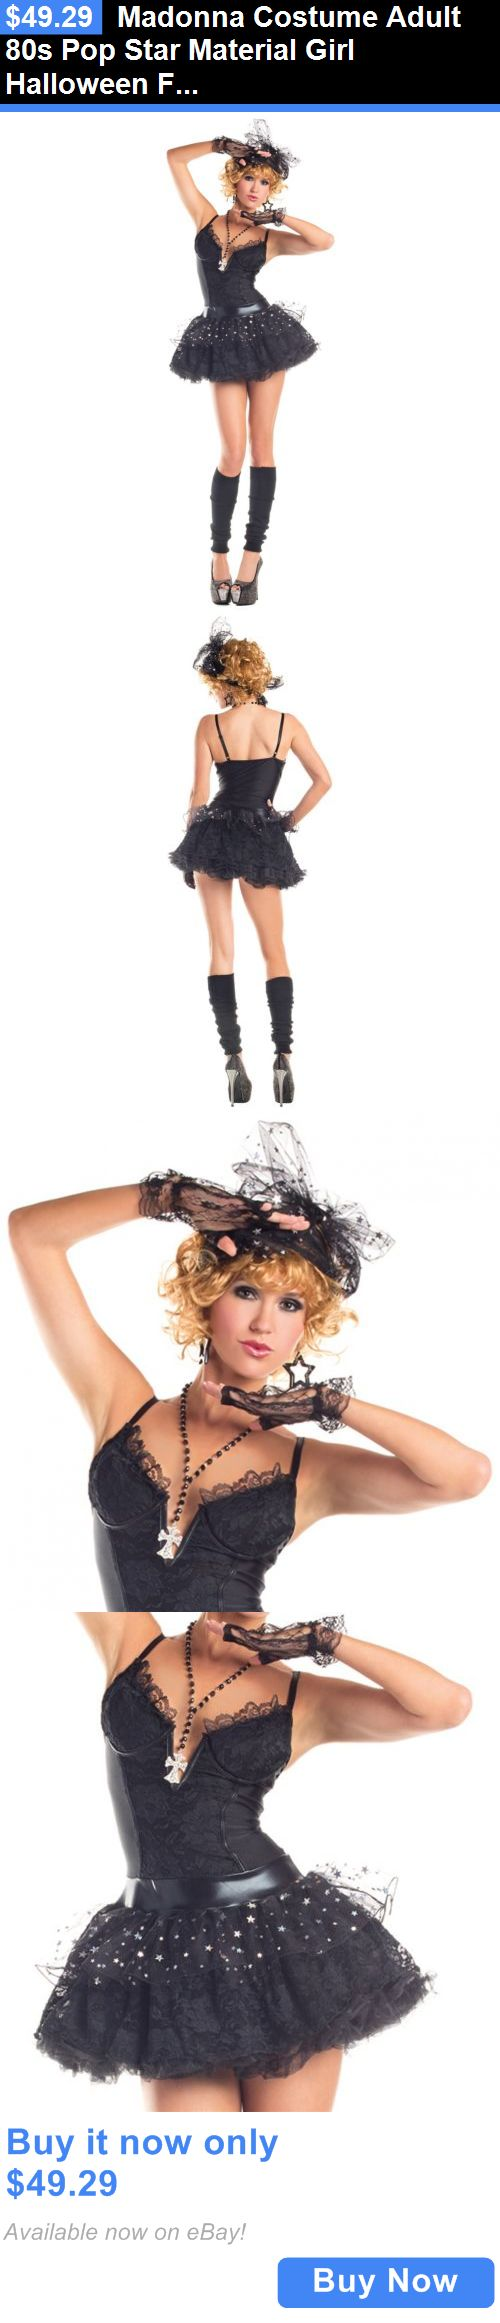 Halloween Costumes Women: Madonna Costume Adult 80S Pop Star Material Girl Halloween Fancy Dress BUY IT NOW ONLY: $49.29